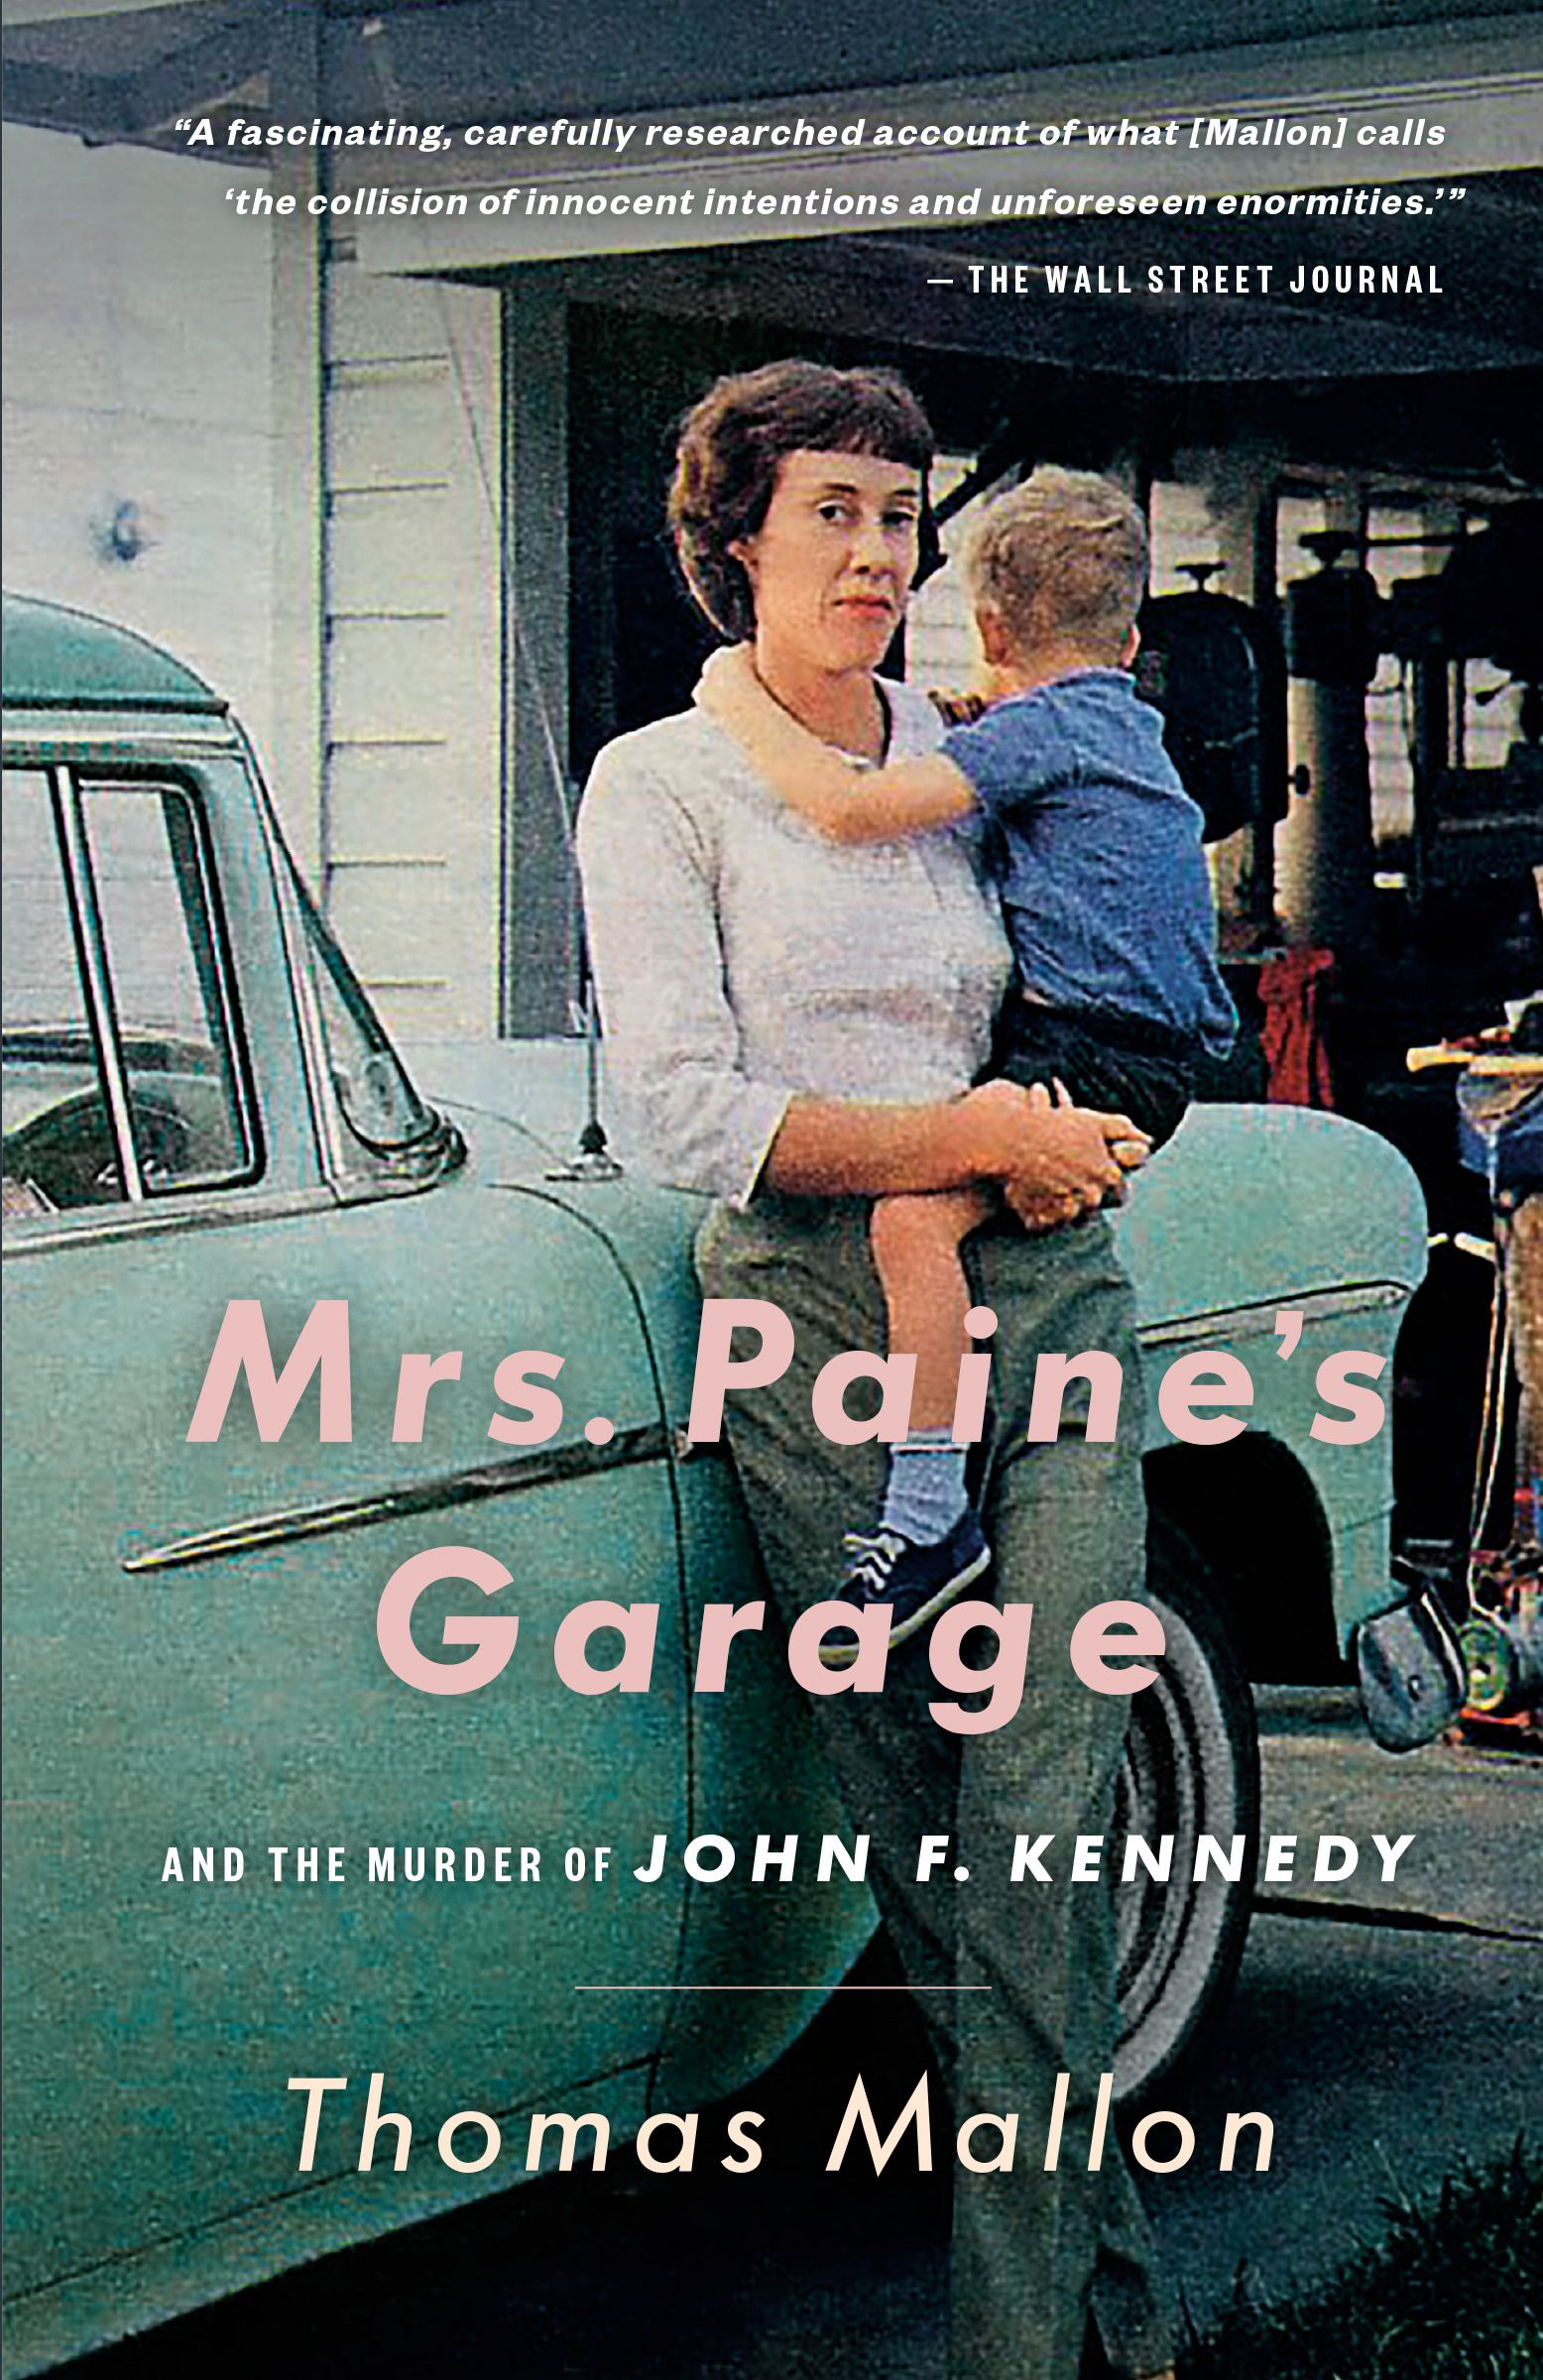 The cover of Thomas Mallon's non-fiction book, Mrs. Paine's Garage, which was released in Vintage trade paperback on Feb. 11, 2020.